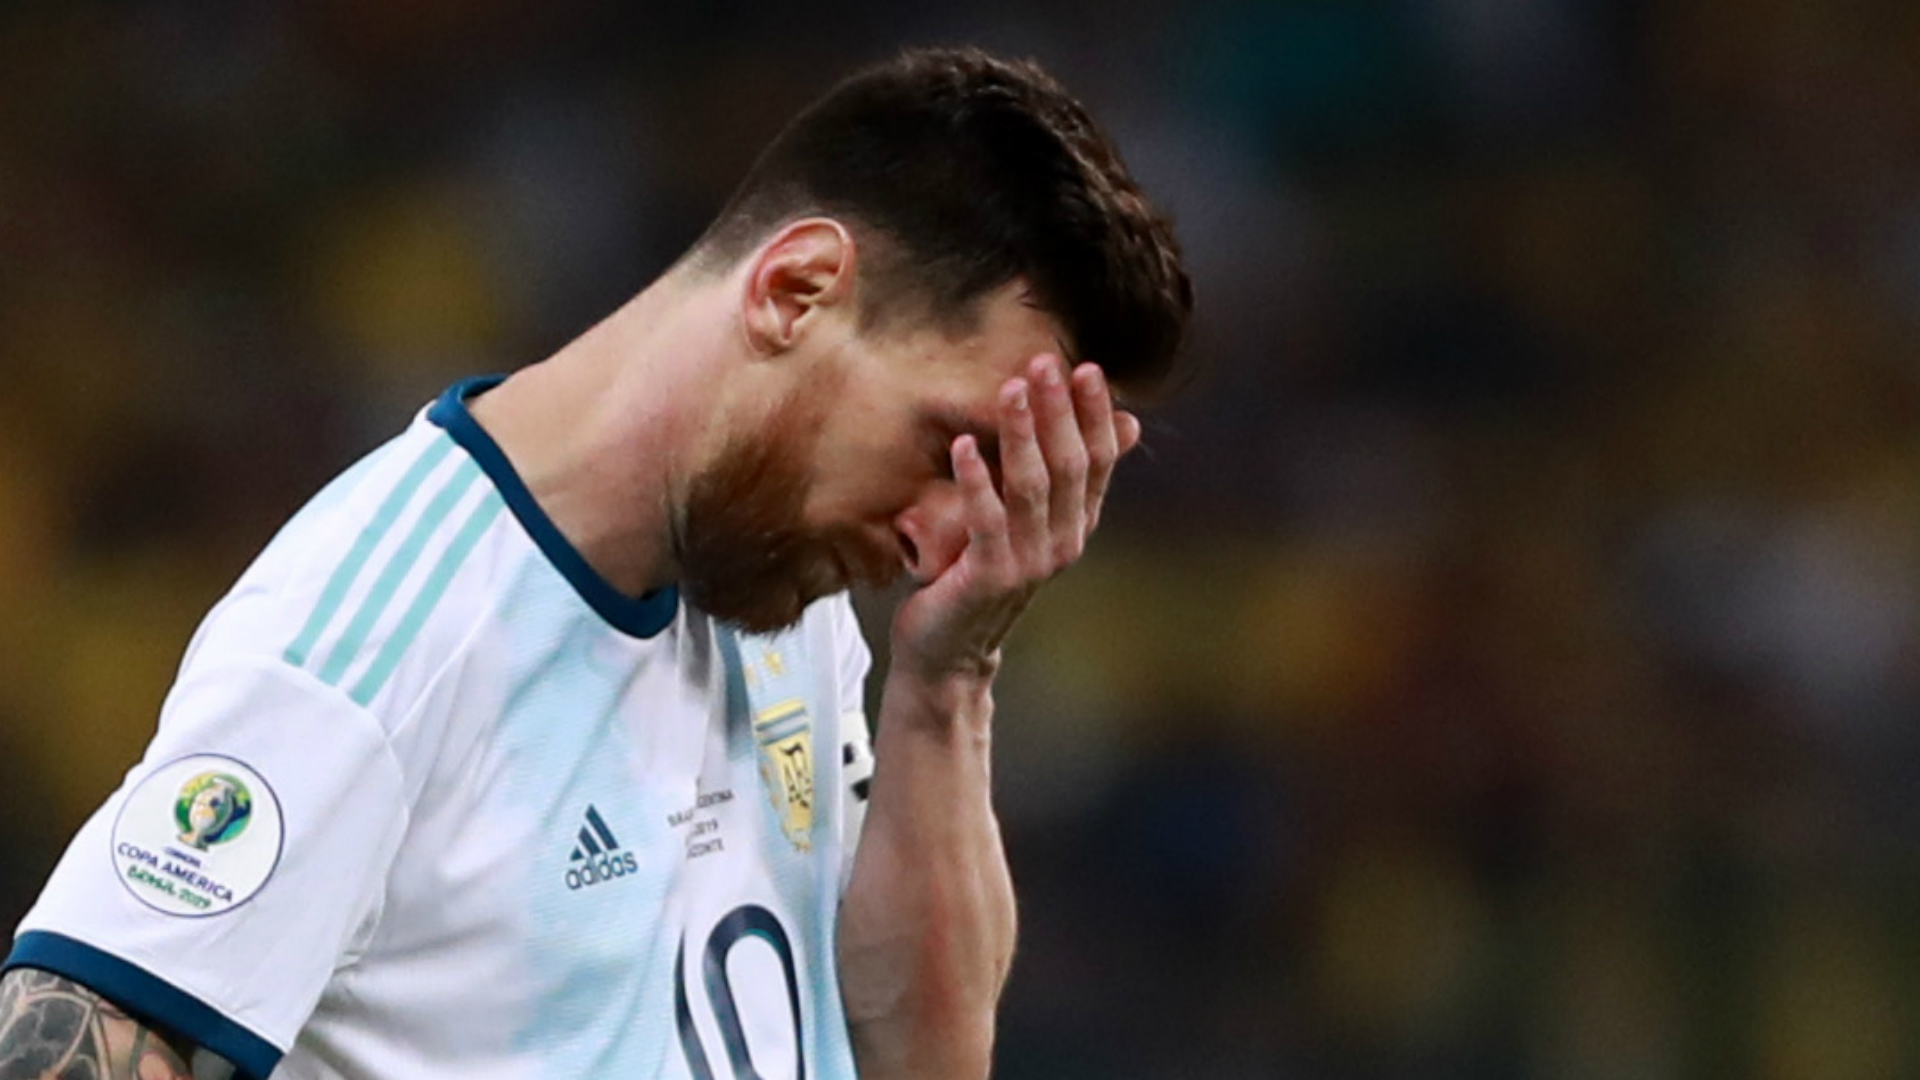 Copa America penalty pain, World Cup final disappointment - Messi's near misses with Argentina